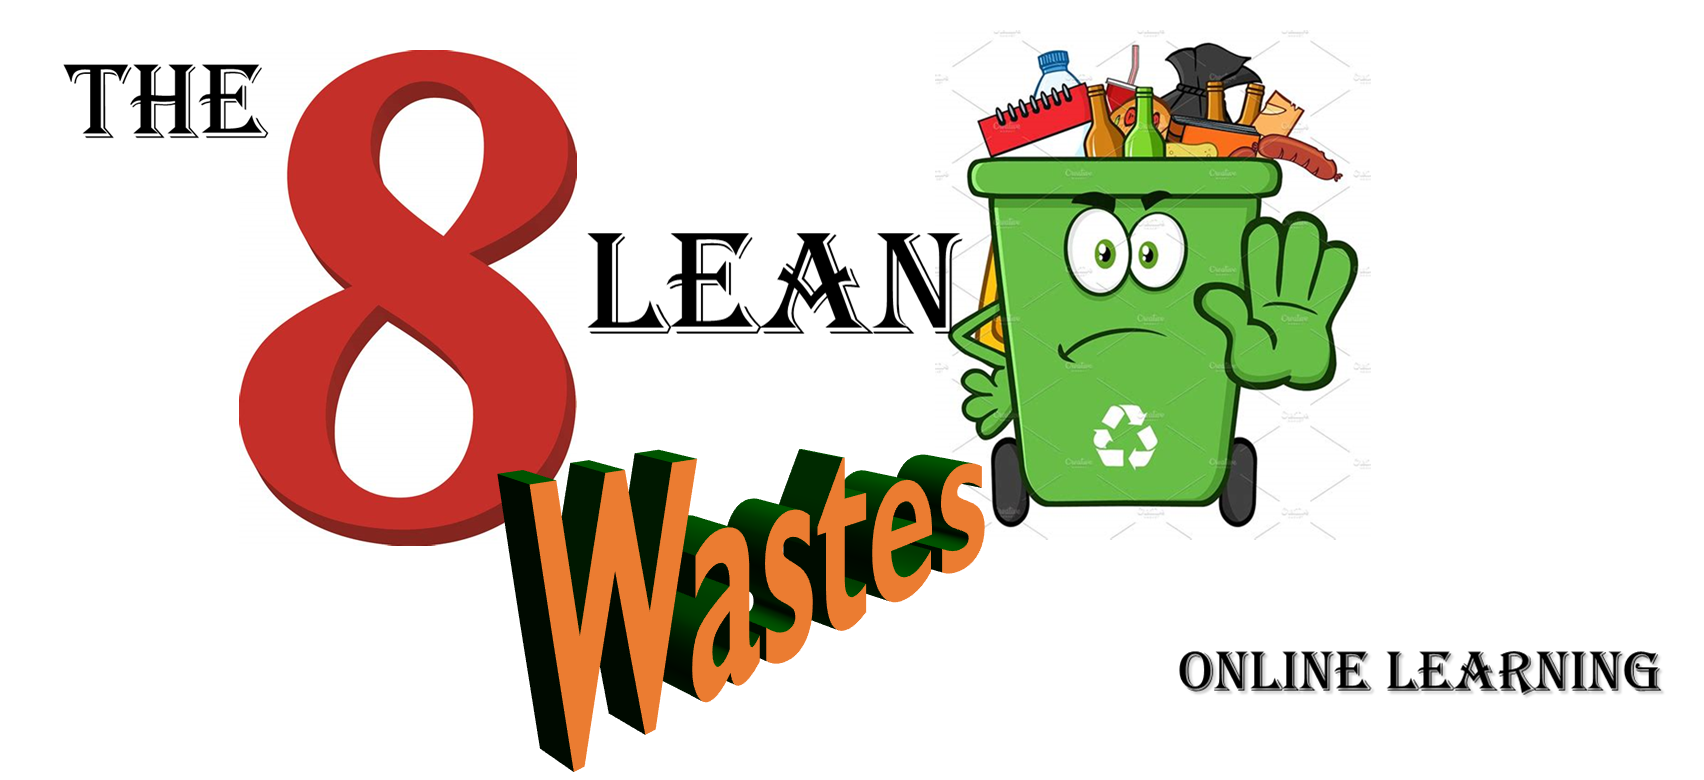 Online Lean 8 Wastes Training